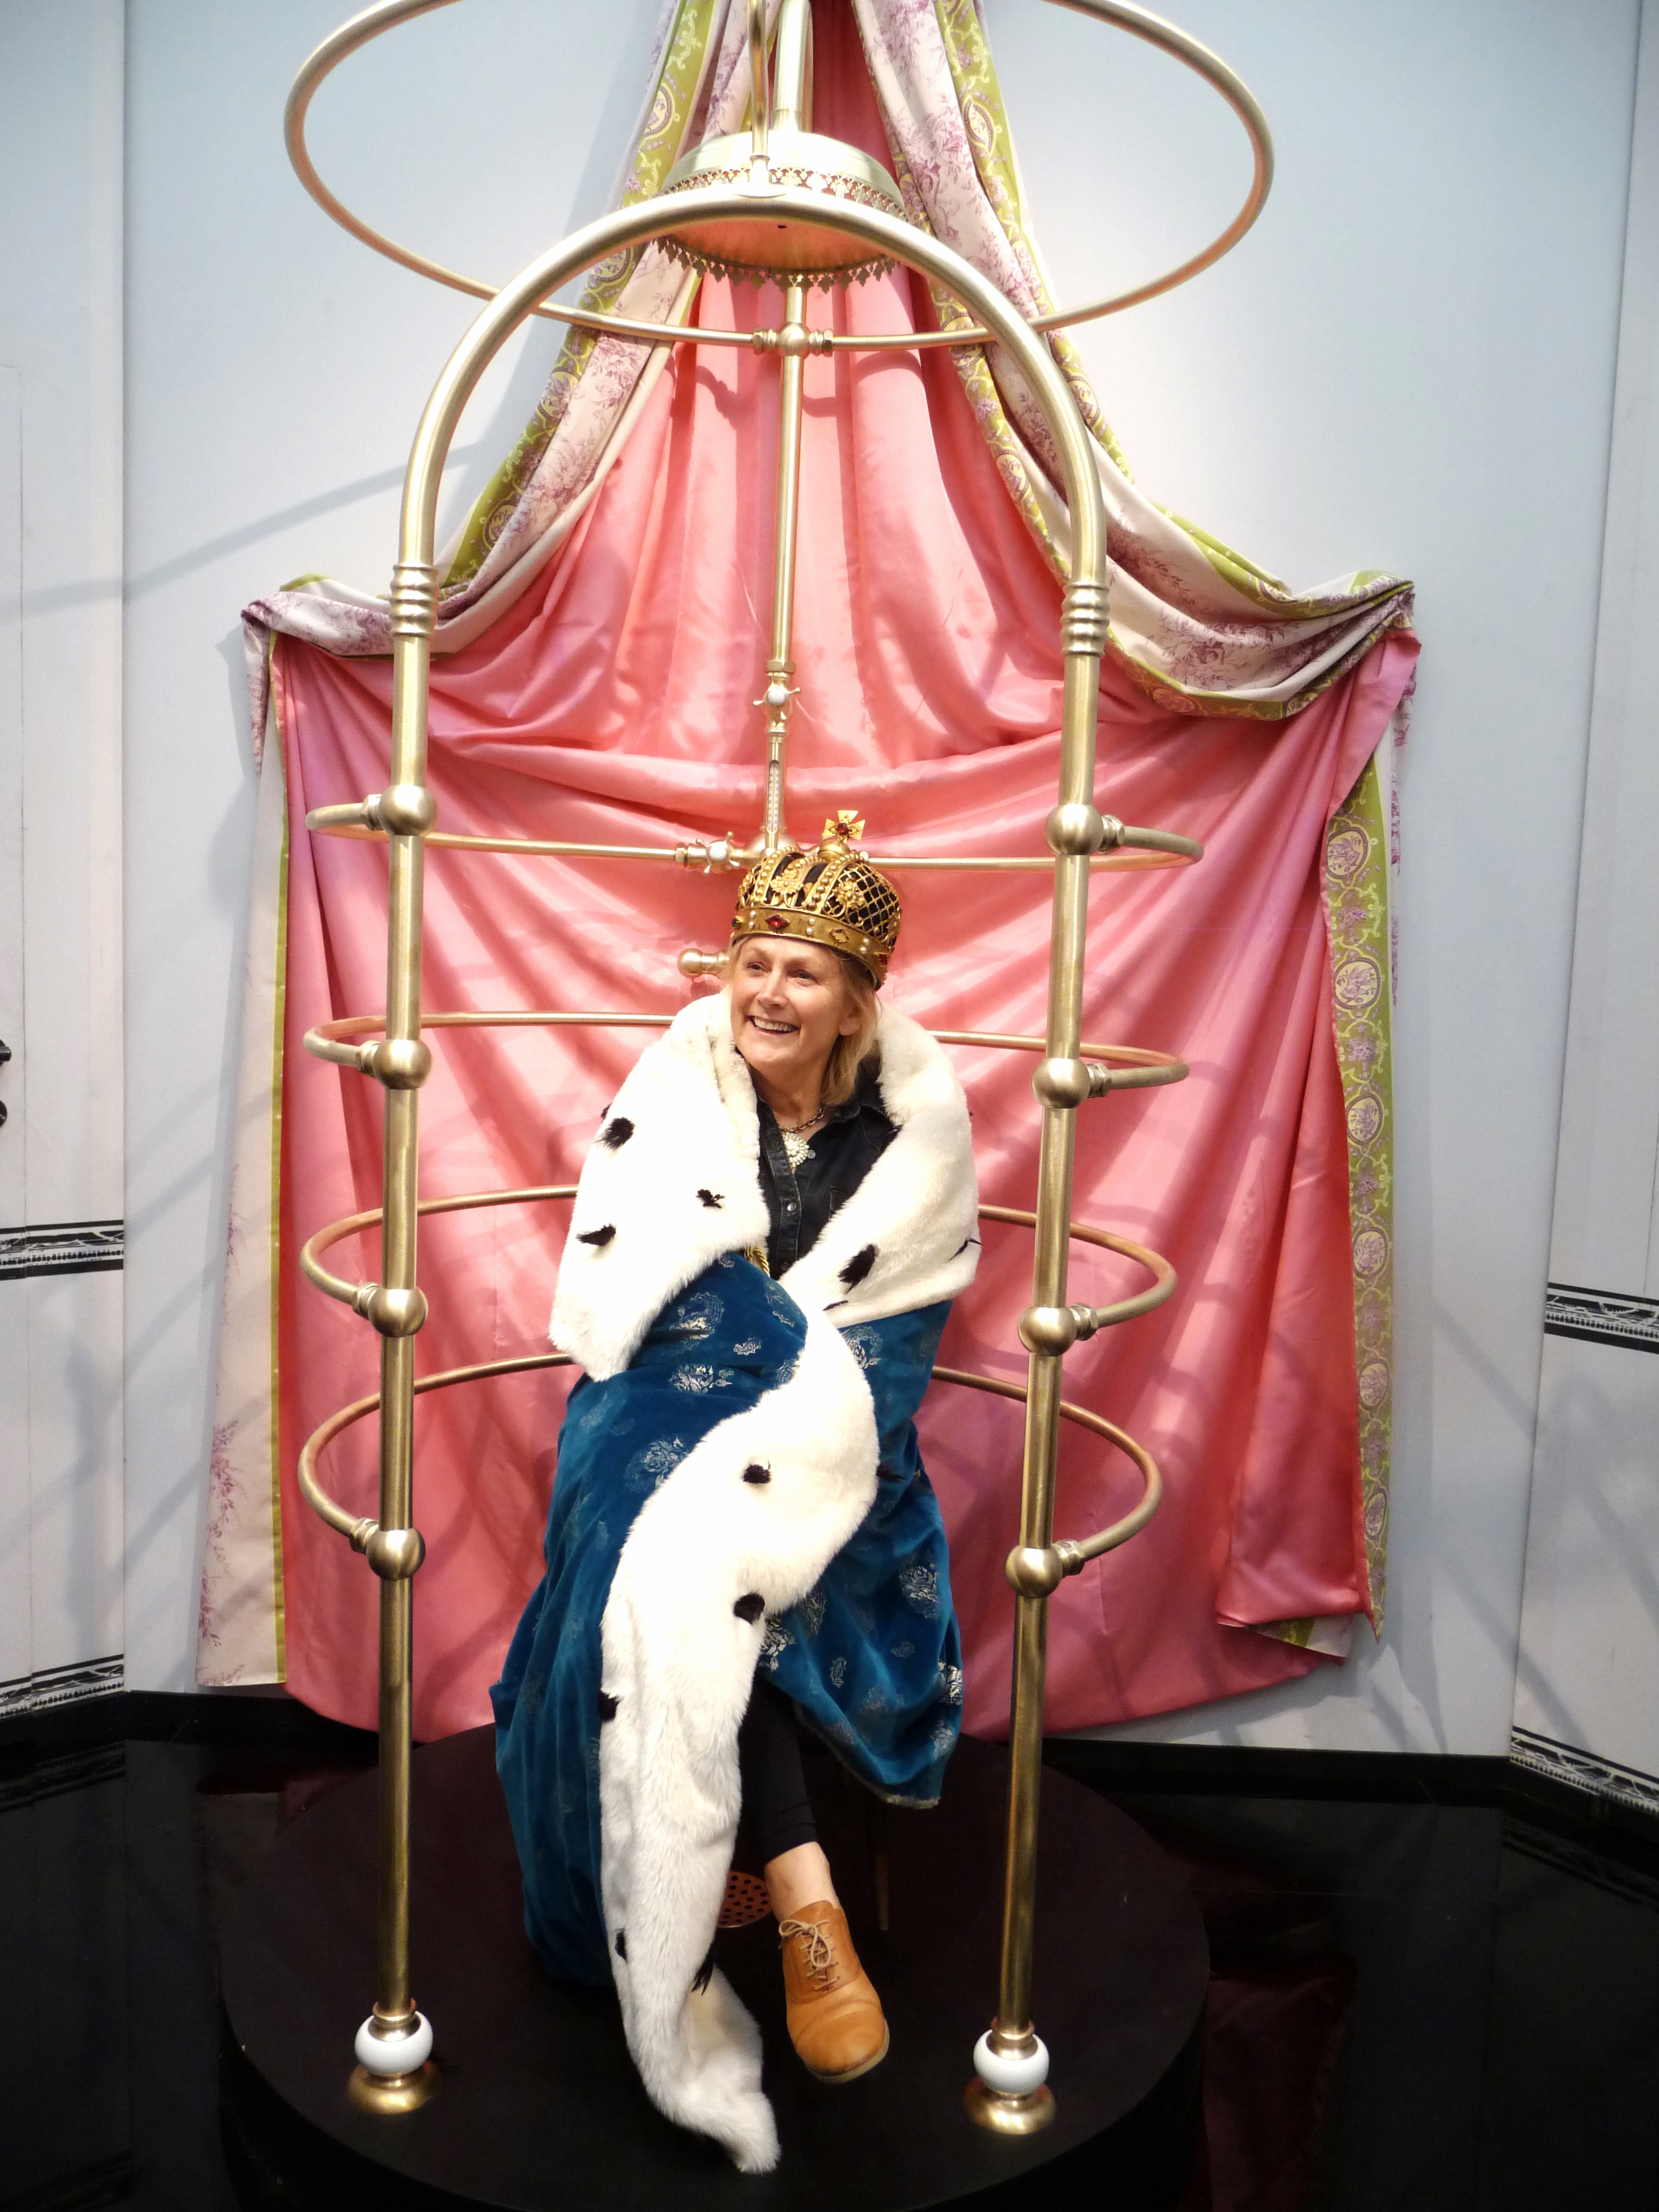 and there's me, queen of the shower!!